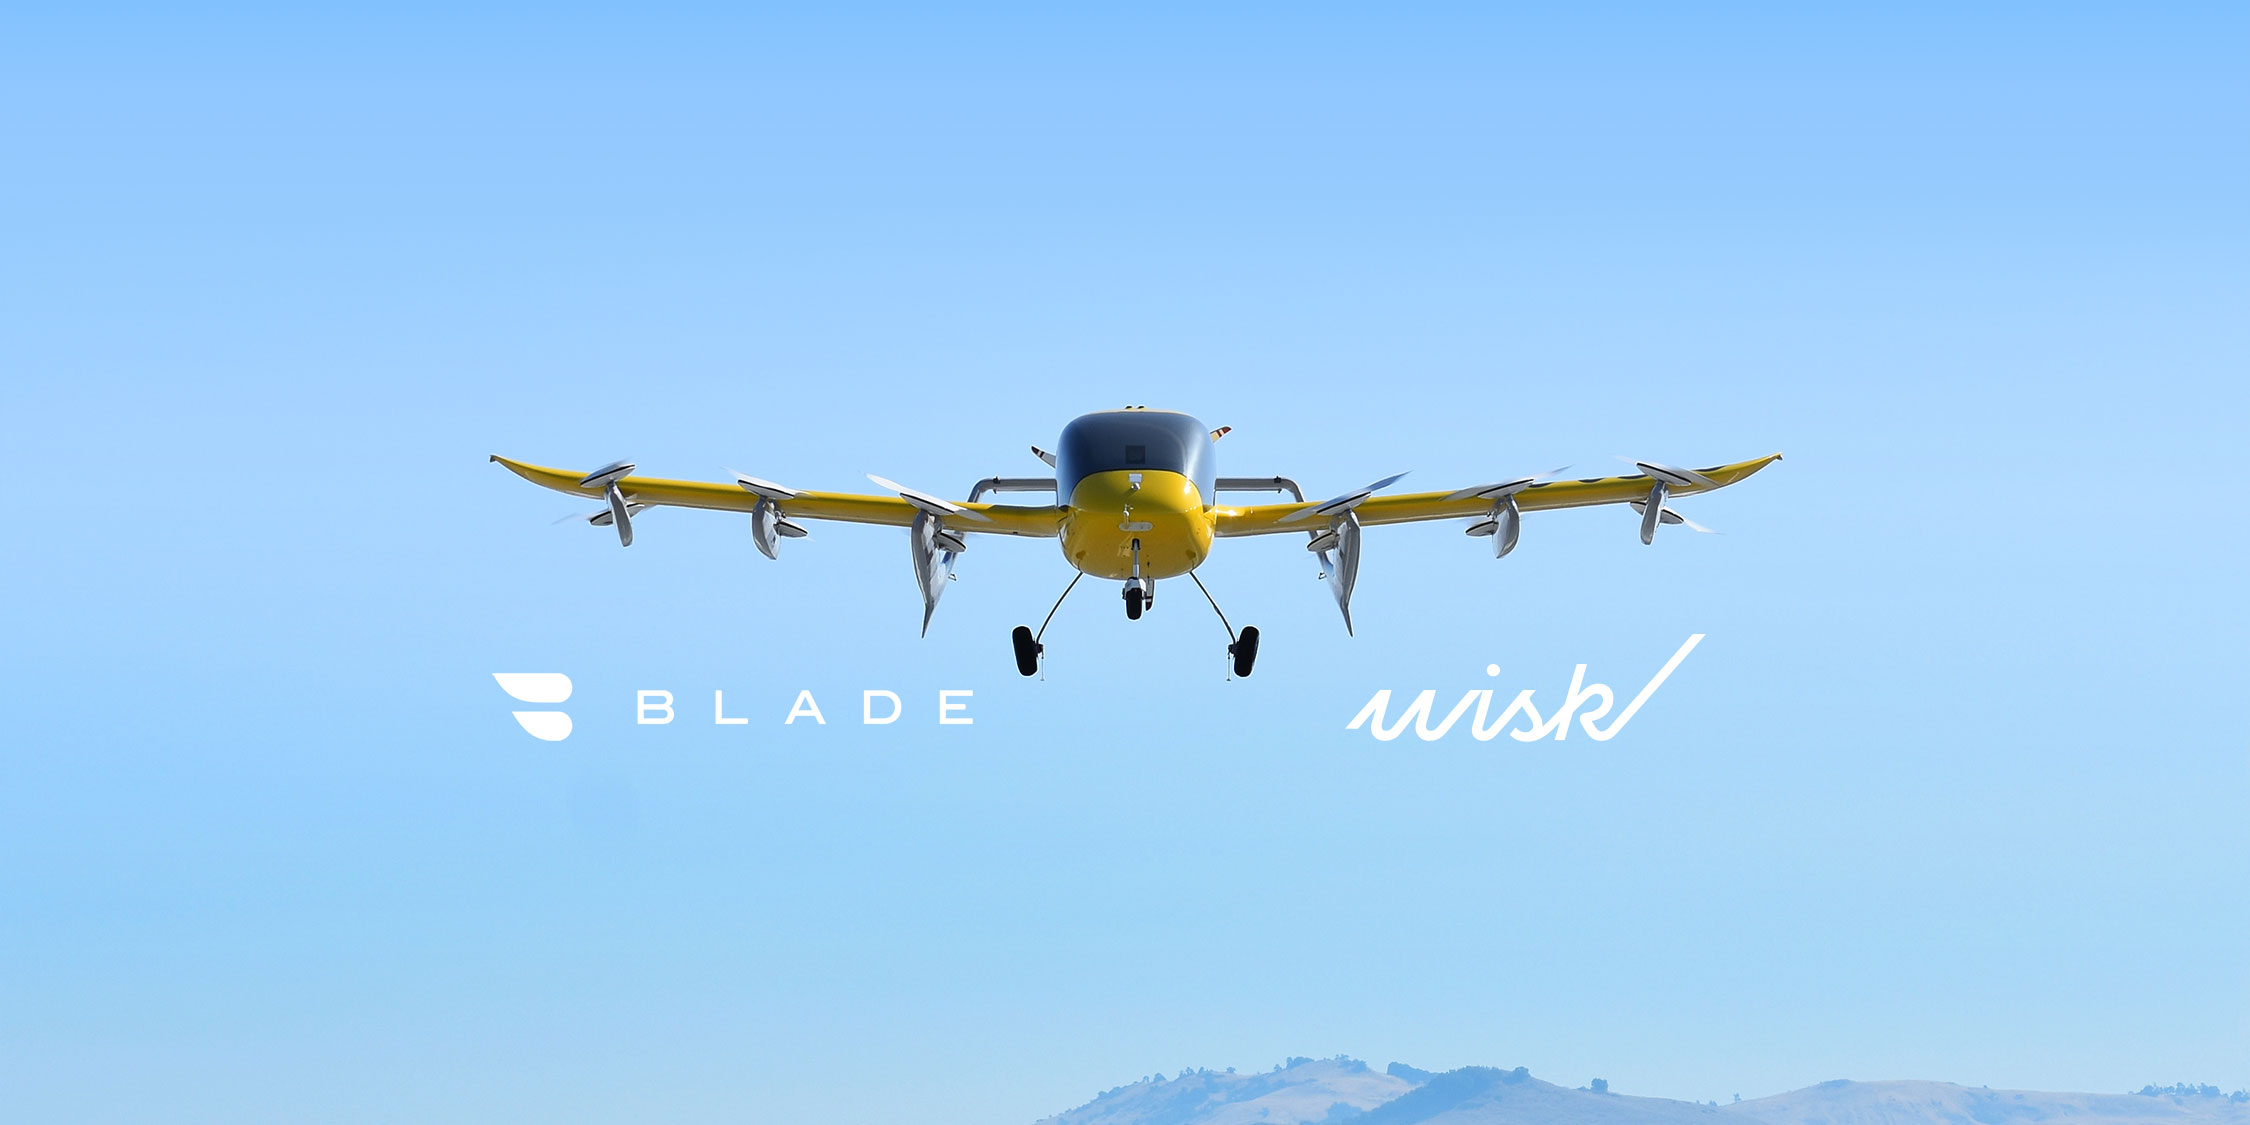 Wisk to Provide and Operate up to 30 Electric Vertical Aircraft for Key Blade Urban Air Mobility Routes